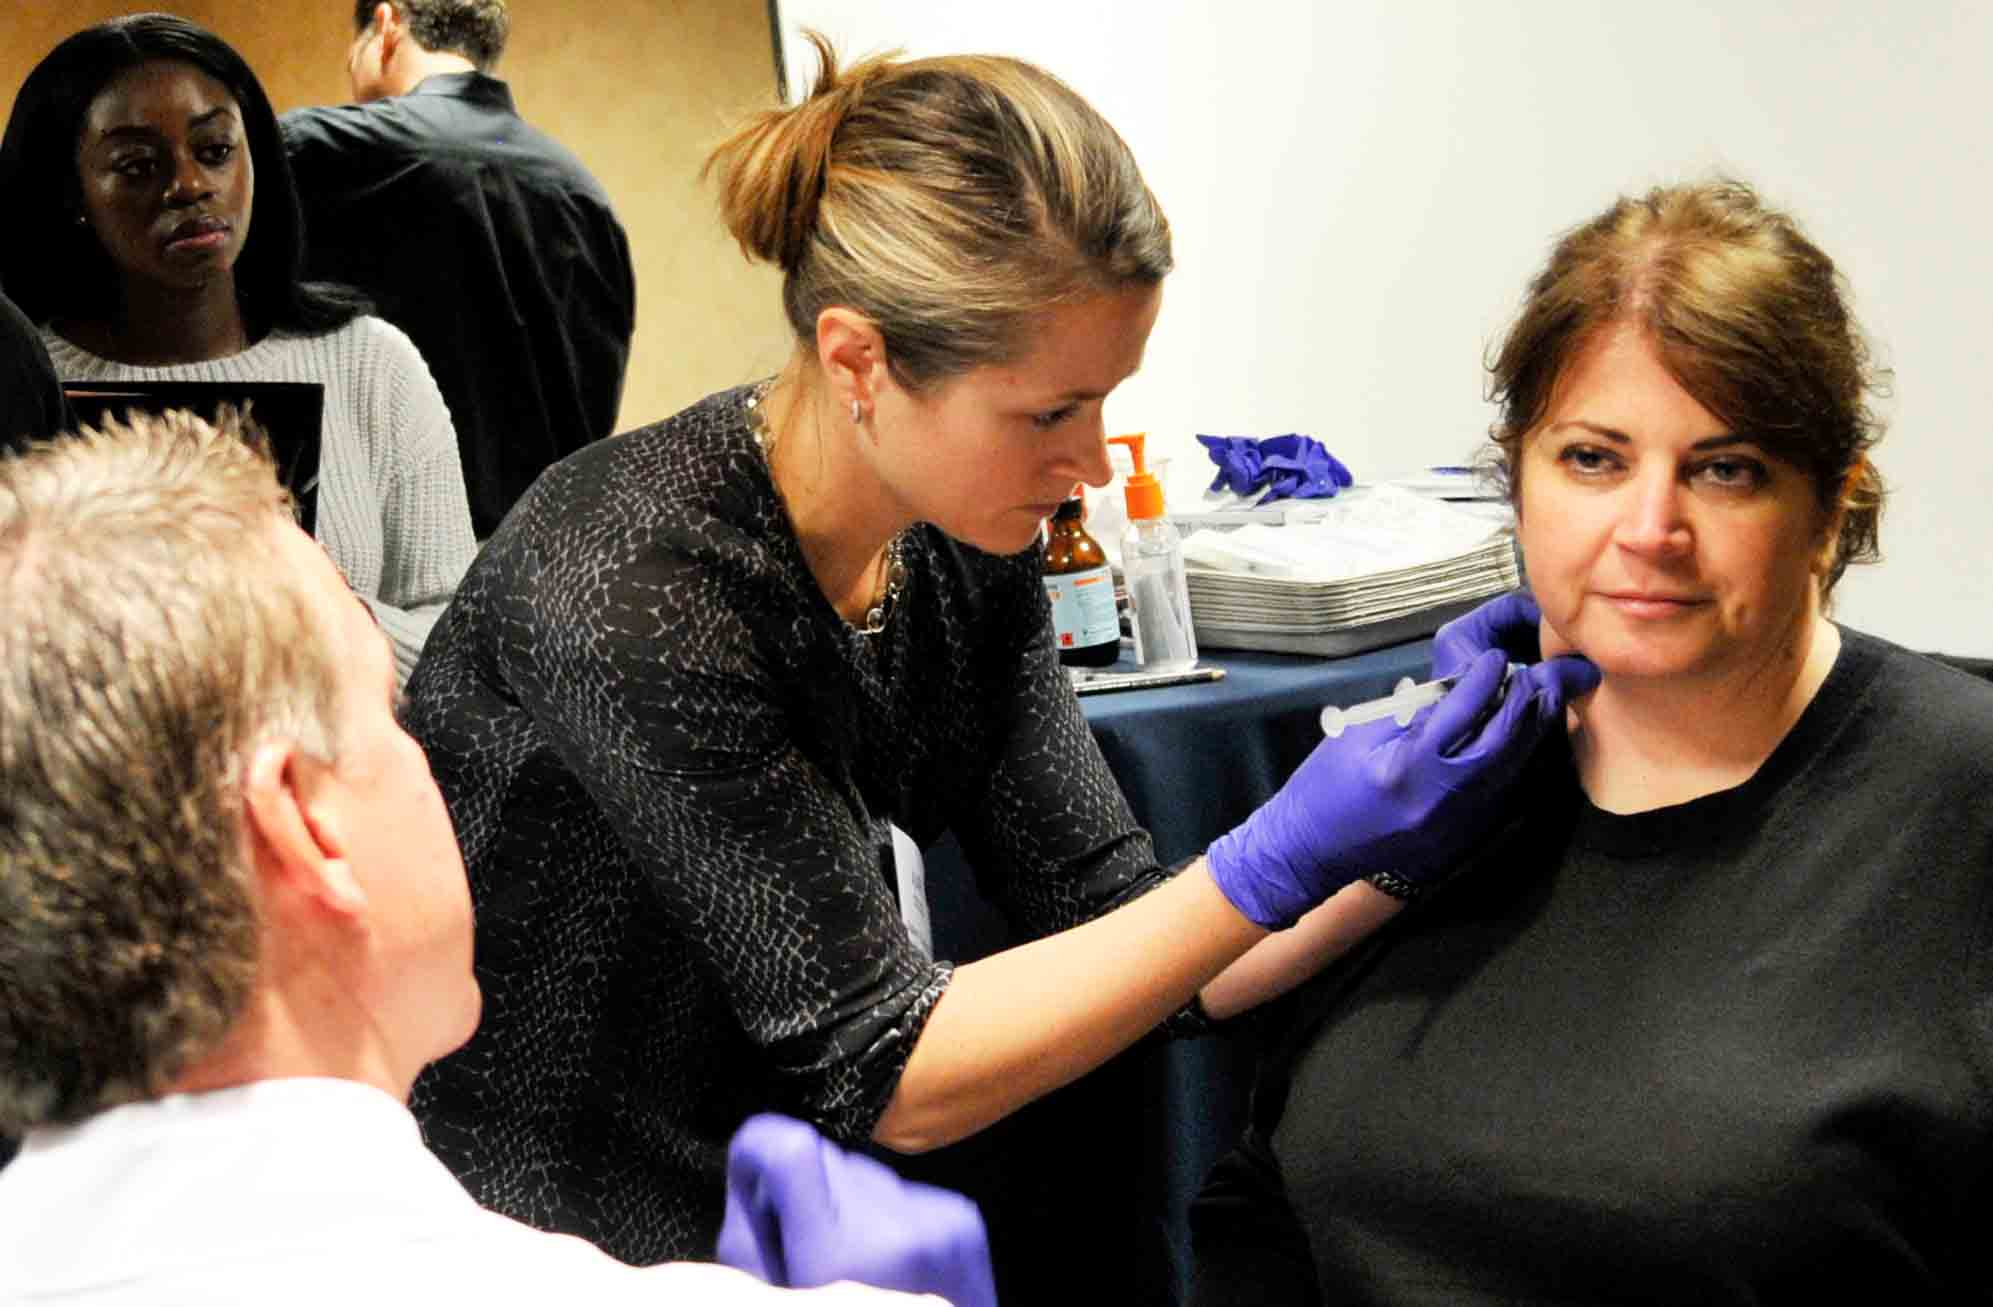 Dr. Caughey places the Botox injection in the masseter muscle.